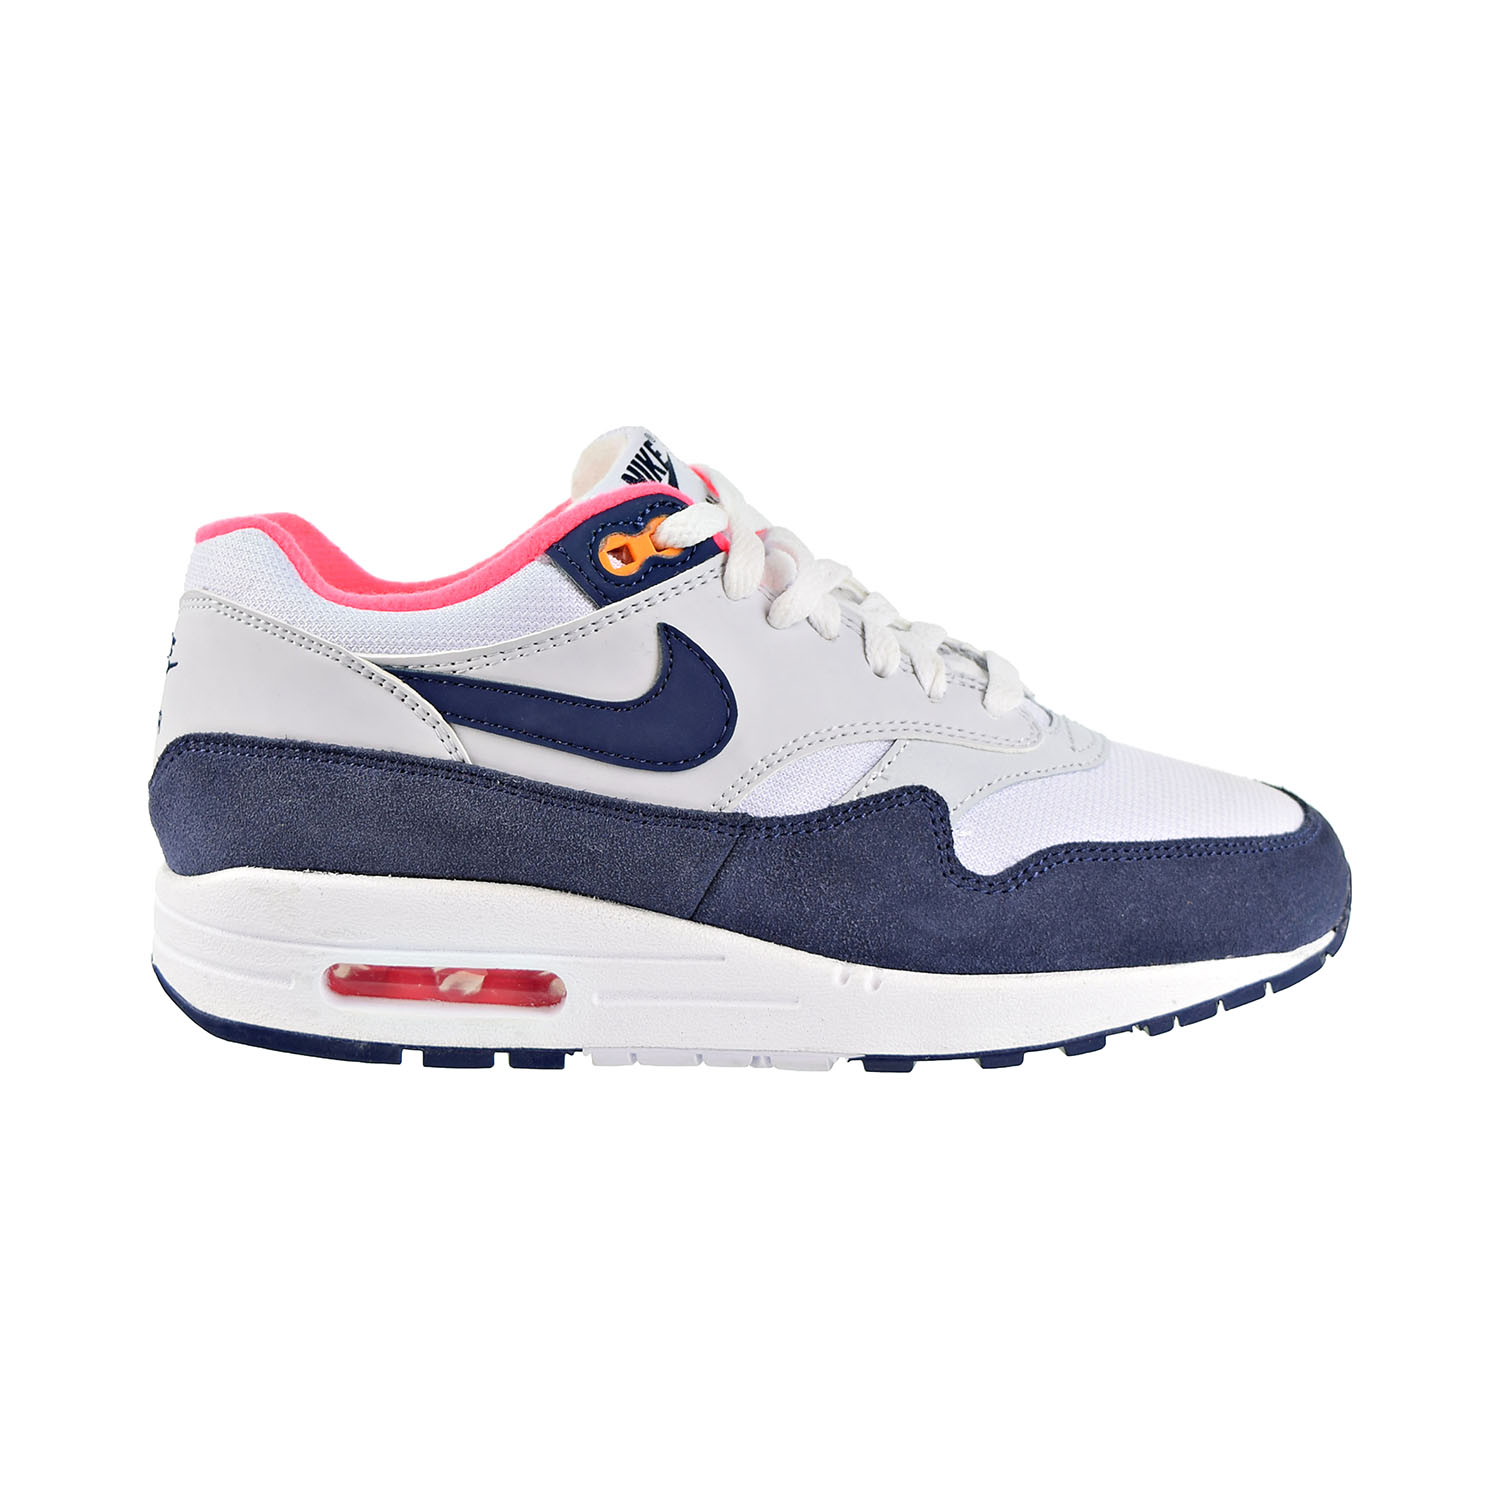 Nike Wmns Air Max 1 White Navy Pink Womens Running Shoes Sneakers 319986-116